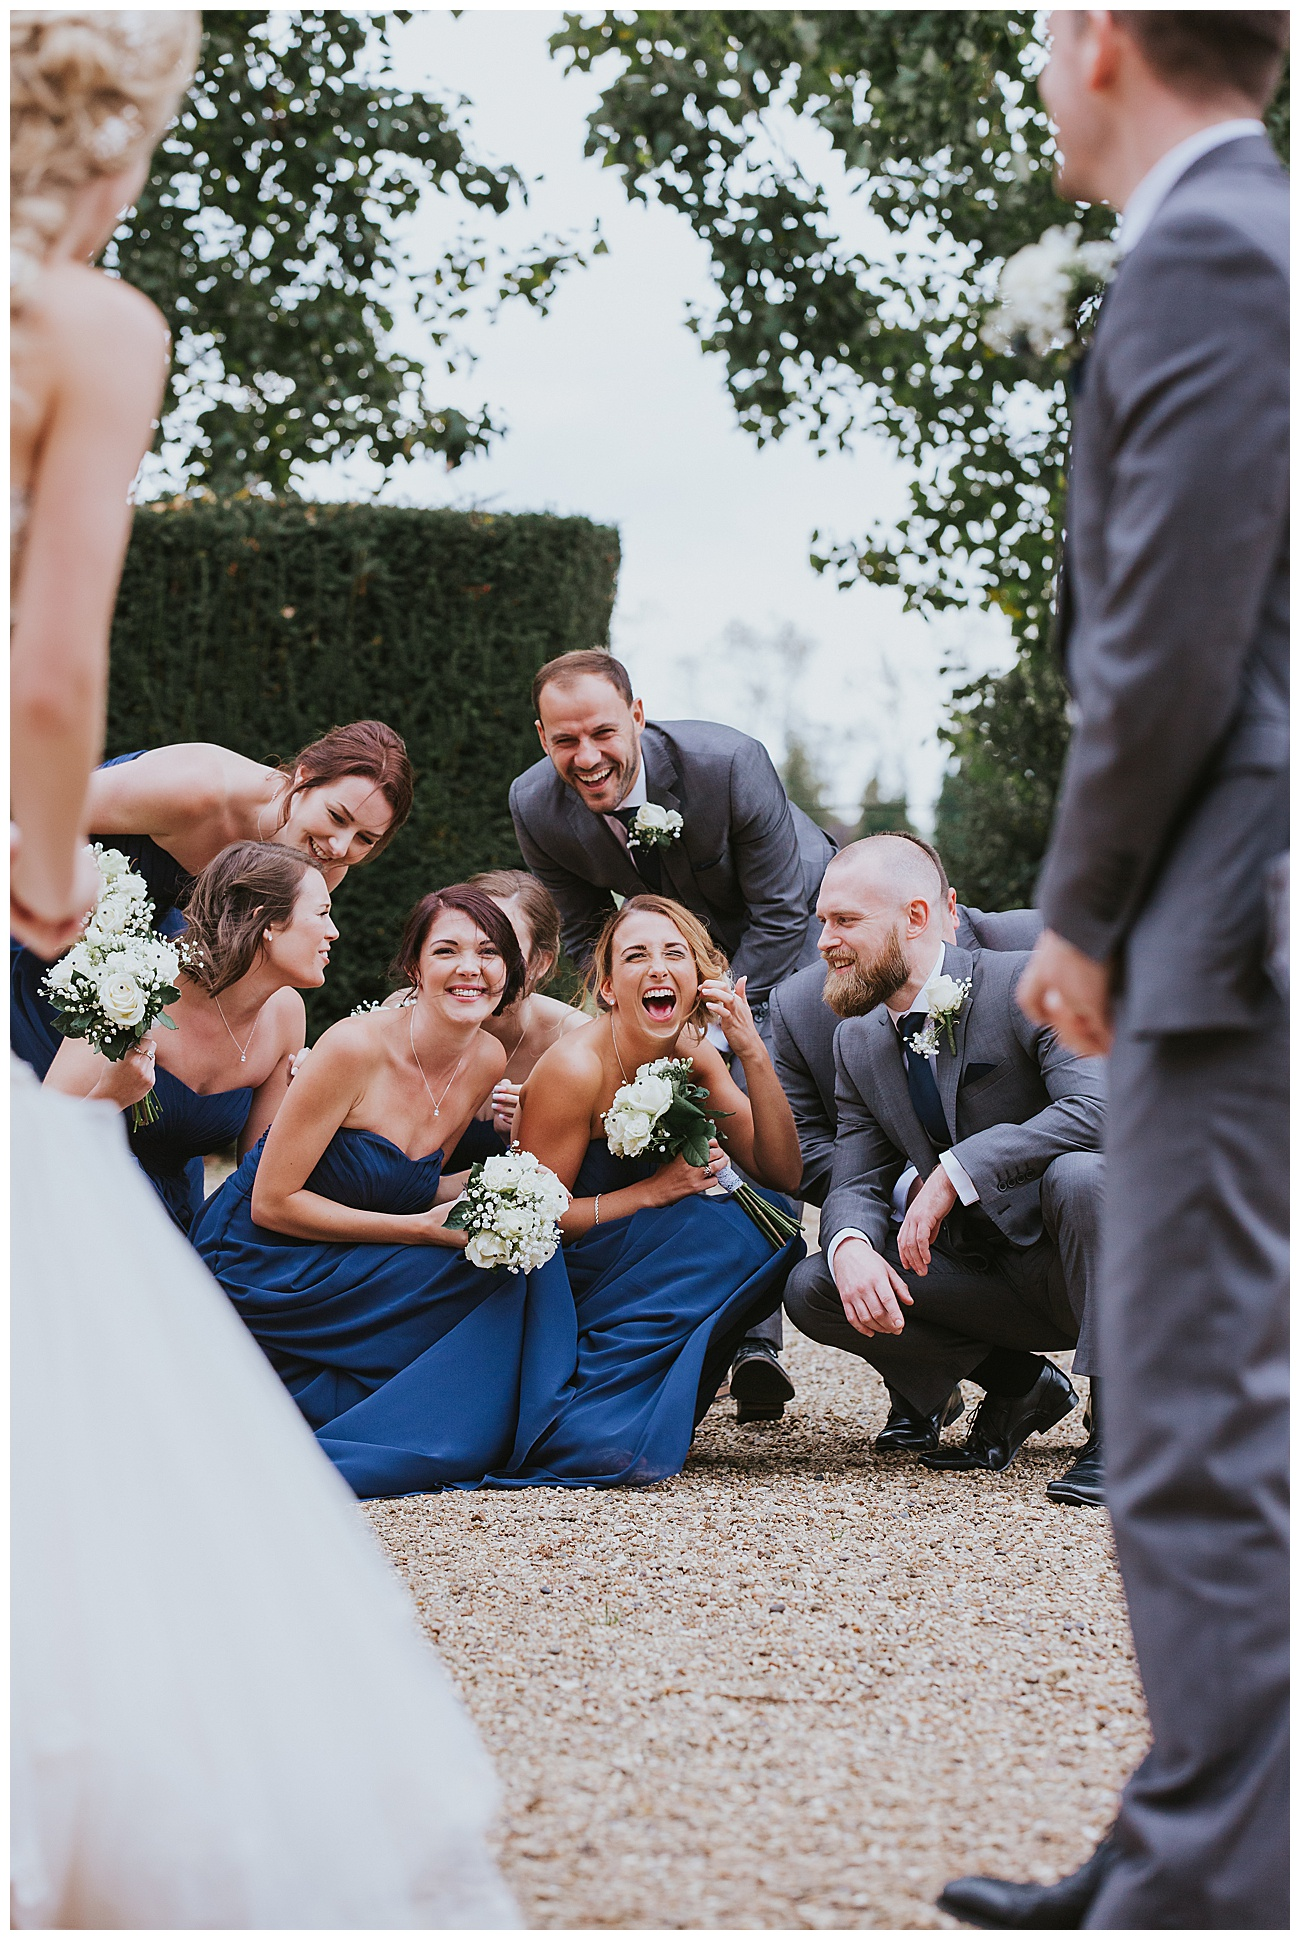 bridal party laugh at a joke together outside